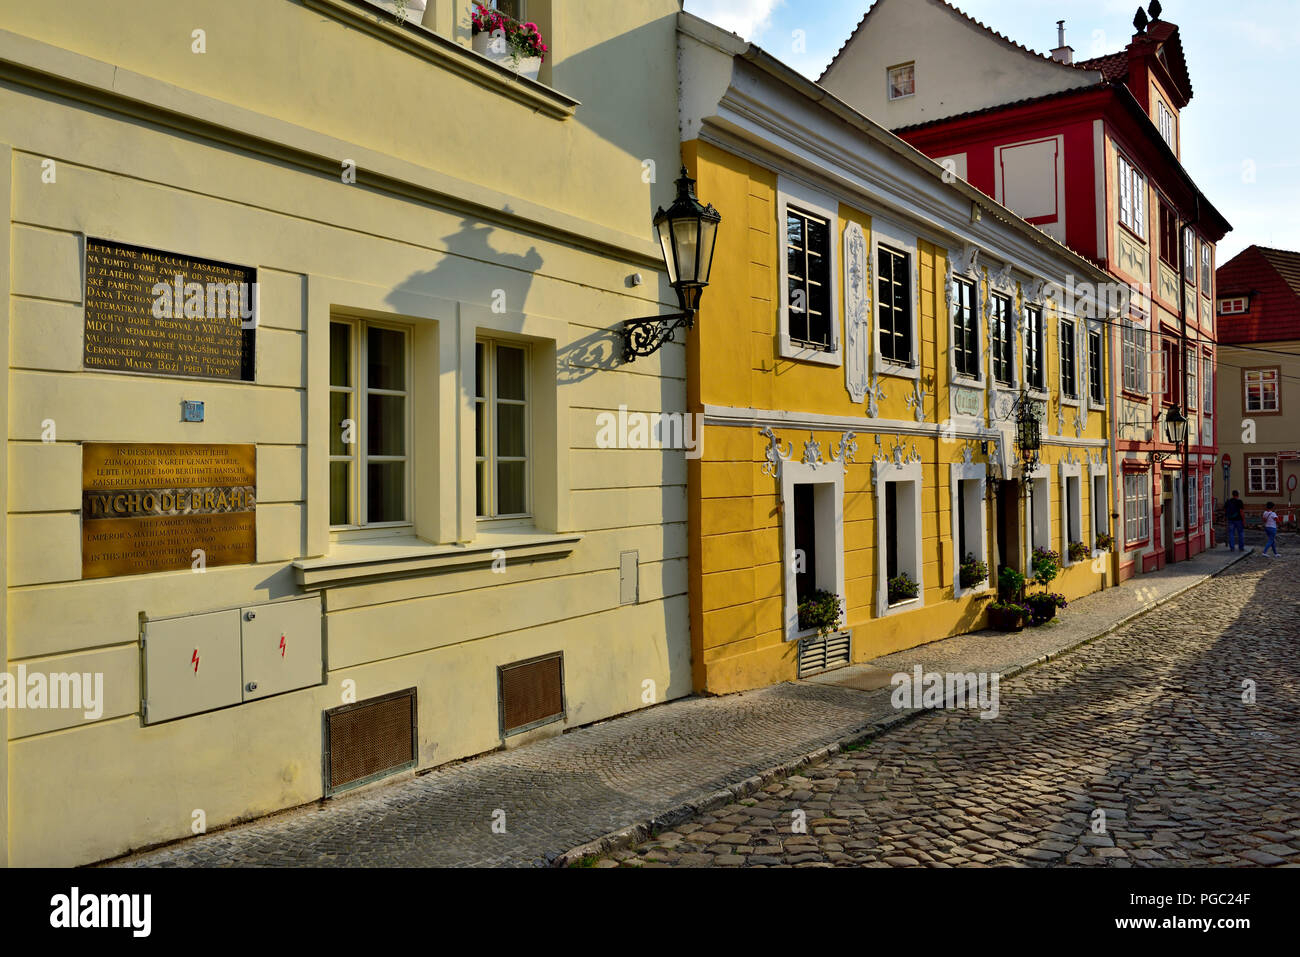 House of Tycho de Brahe, famous Danish mathematician and astronomer to 1600, when he lived in Prague - Stock Image